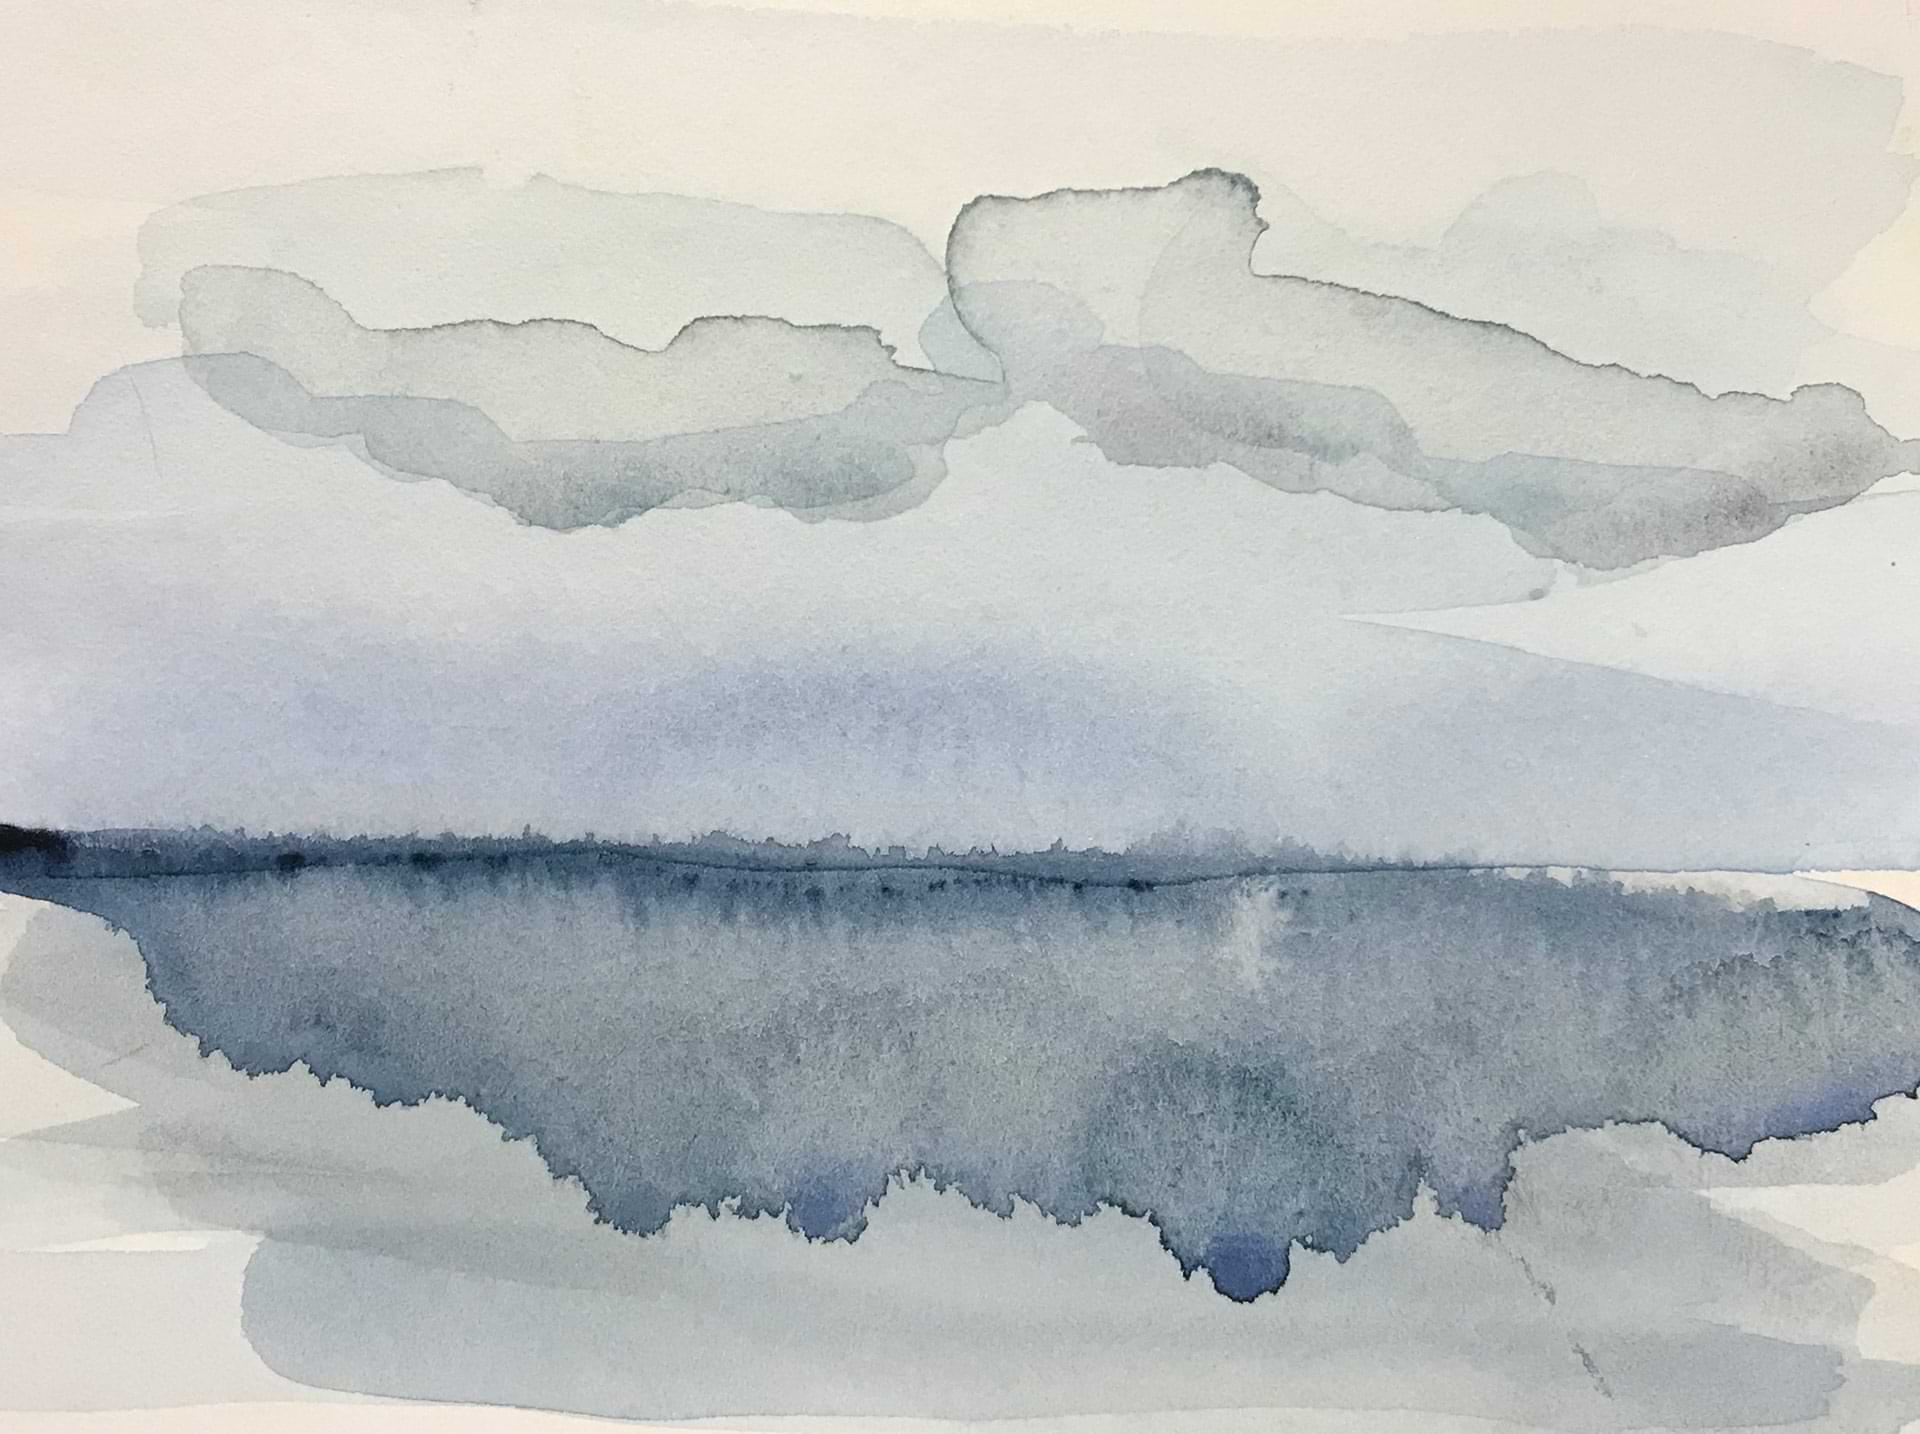 christianehaag-kunst-art-drawing-painting-aquarell-zeichnung